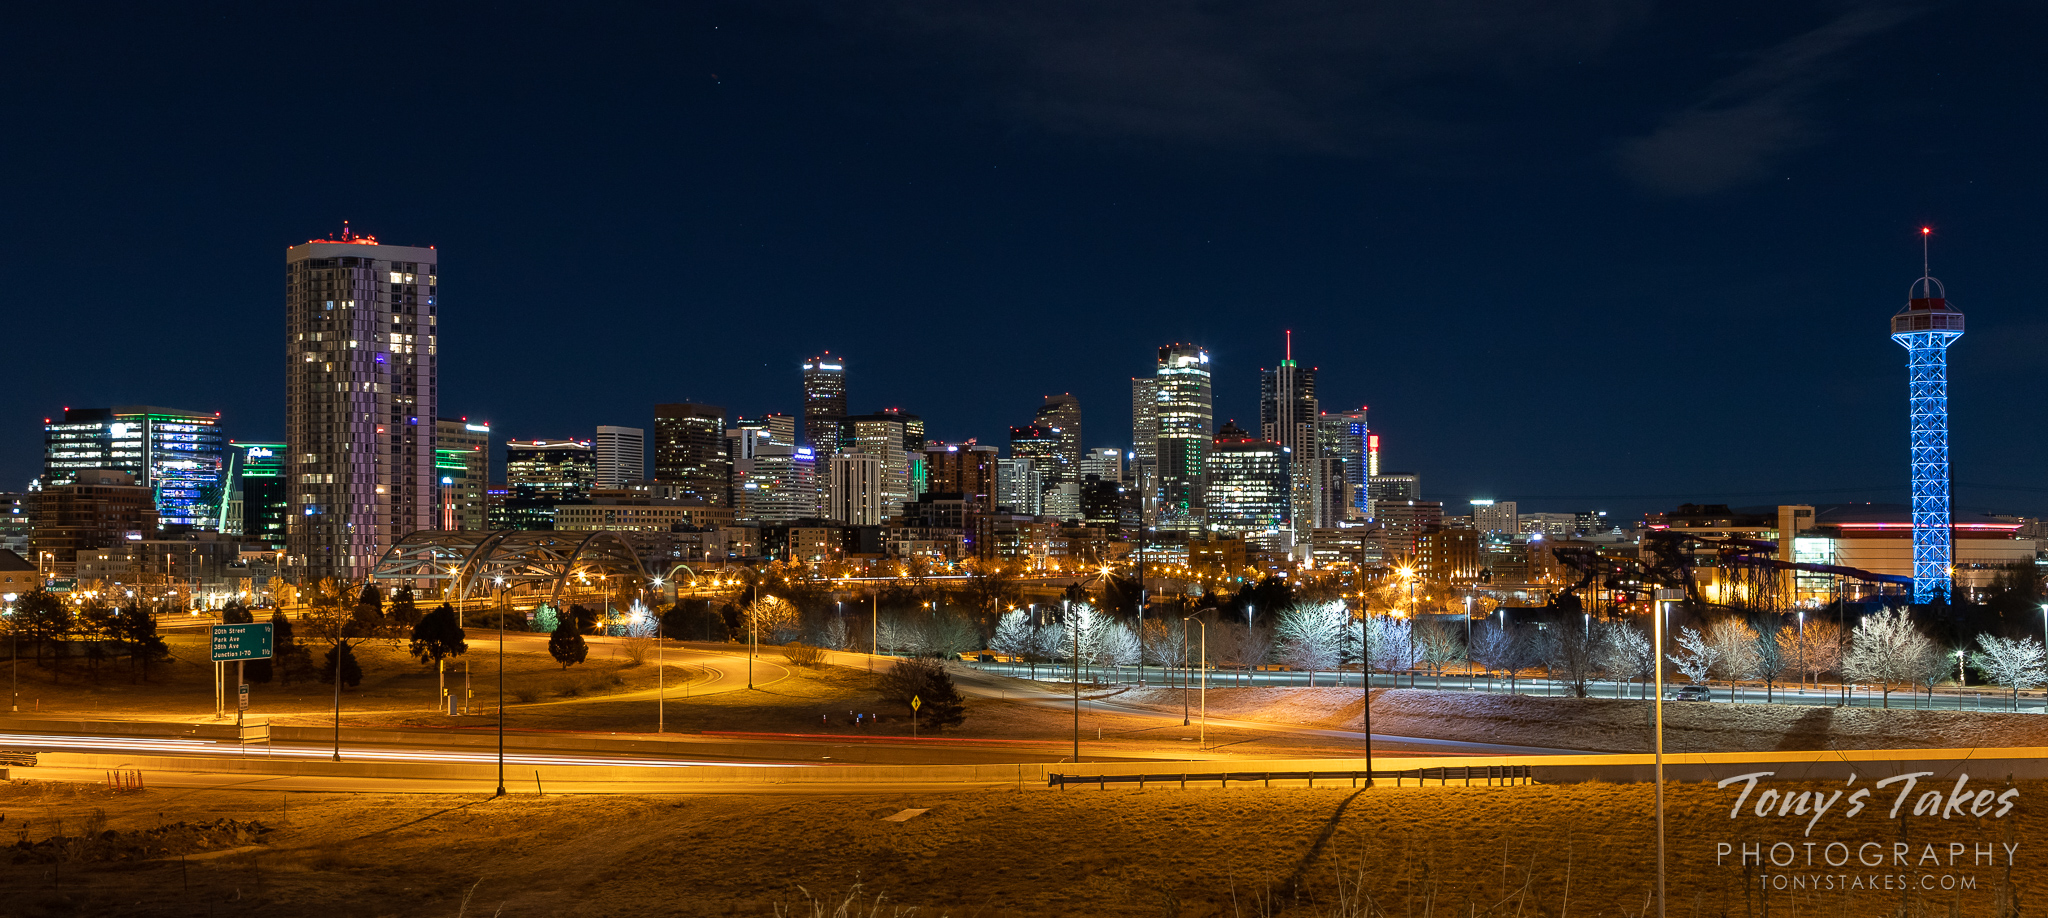 The skyline of Denver, Colorado at night. (© Tony's Takes)